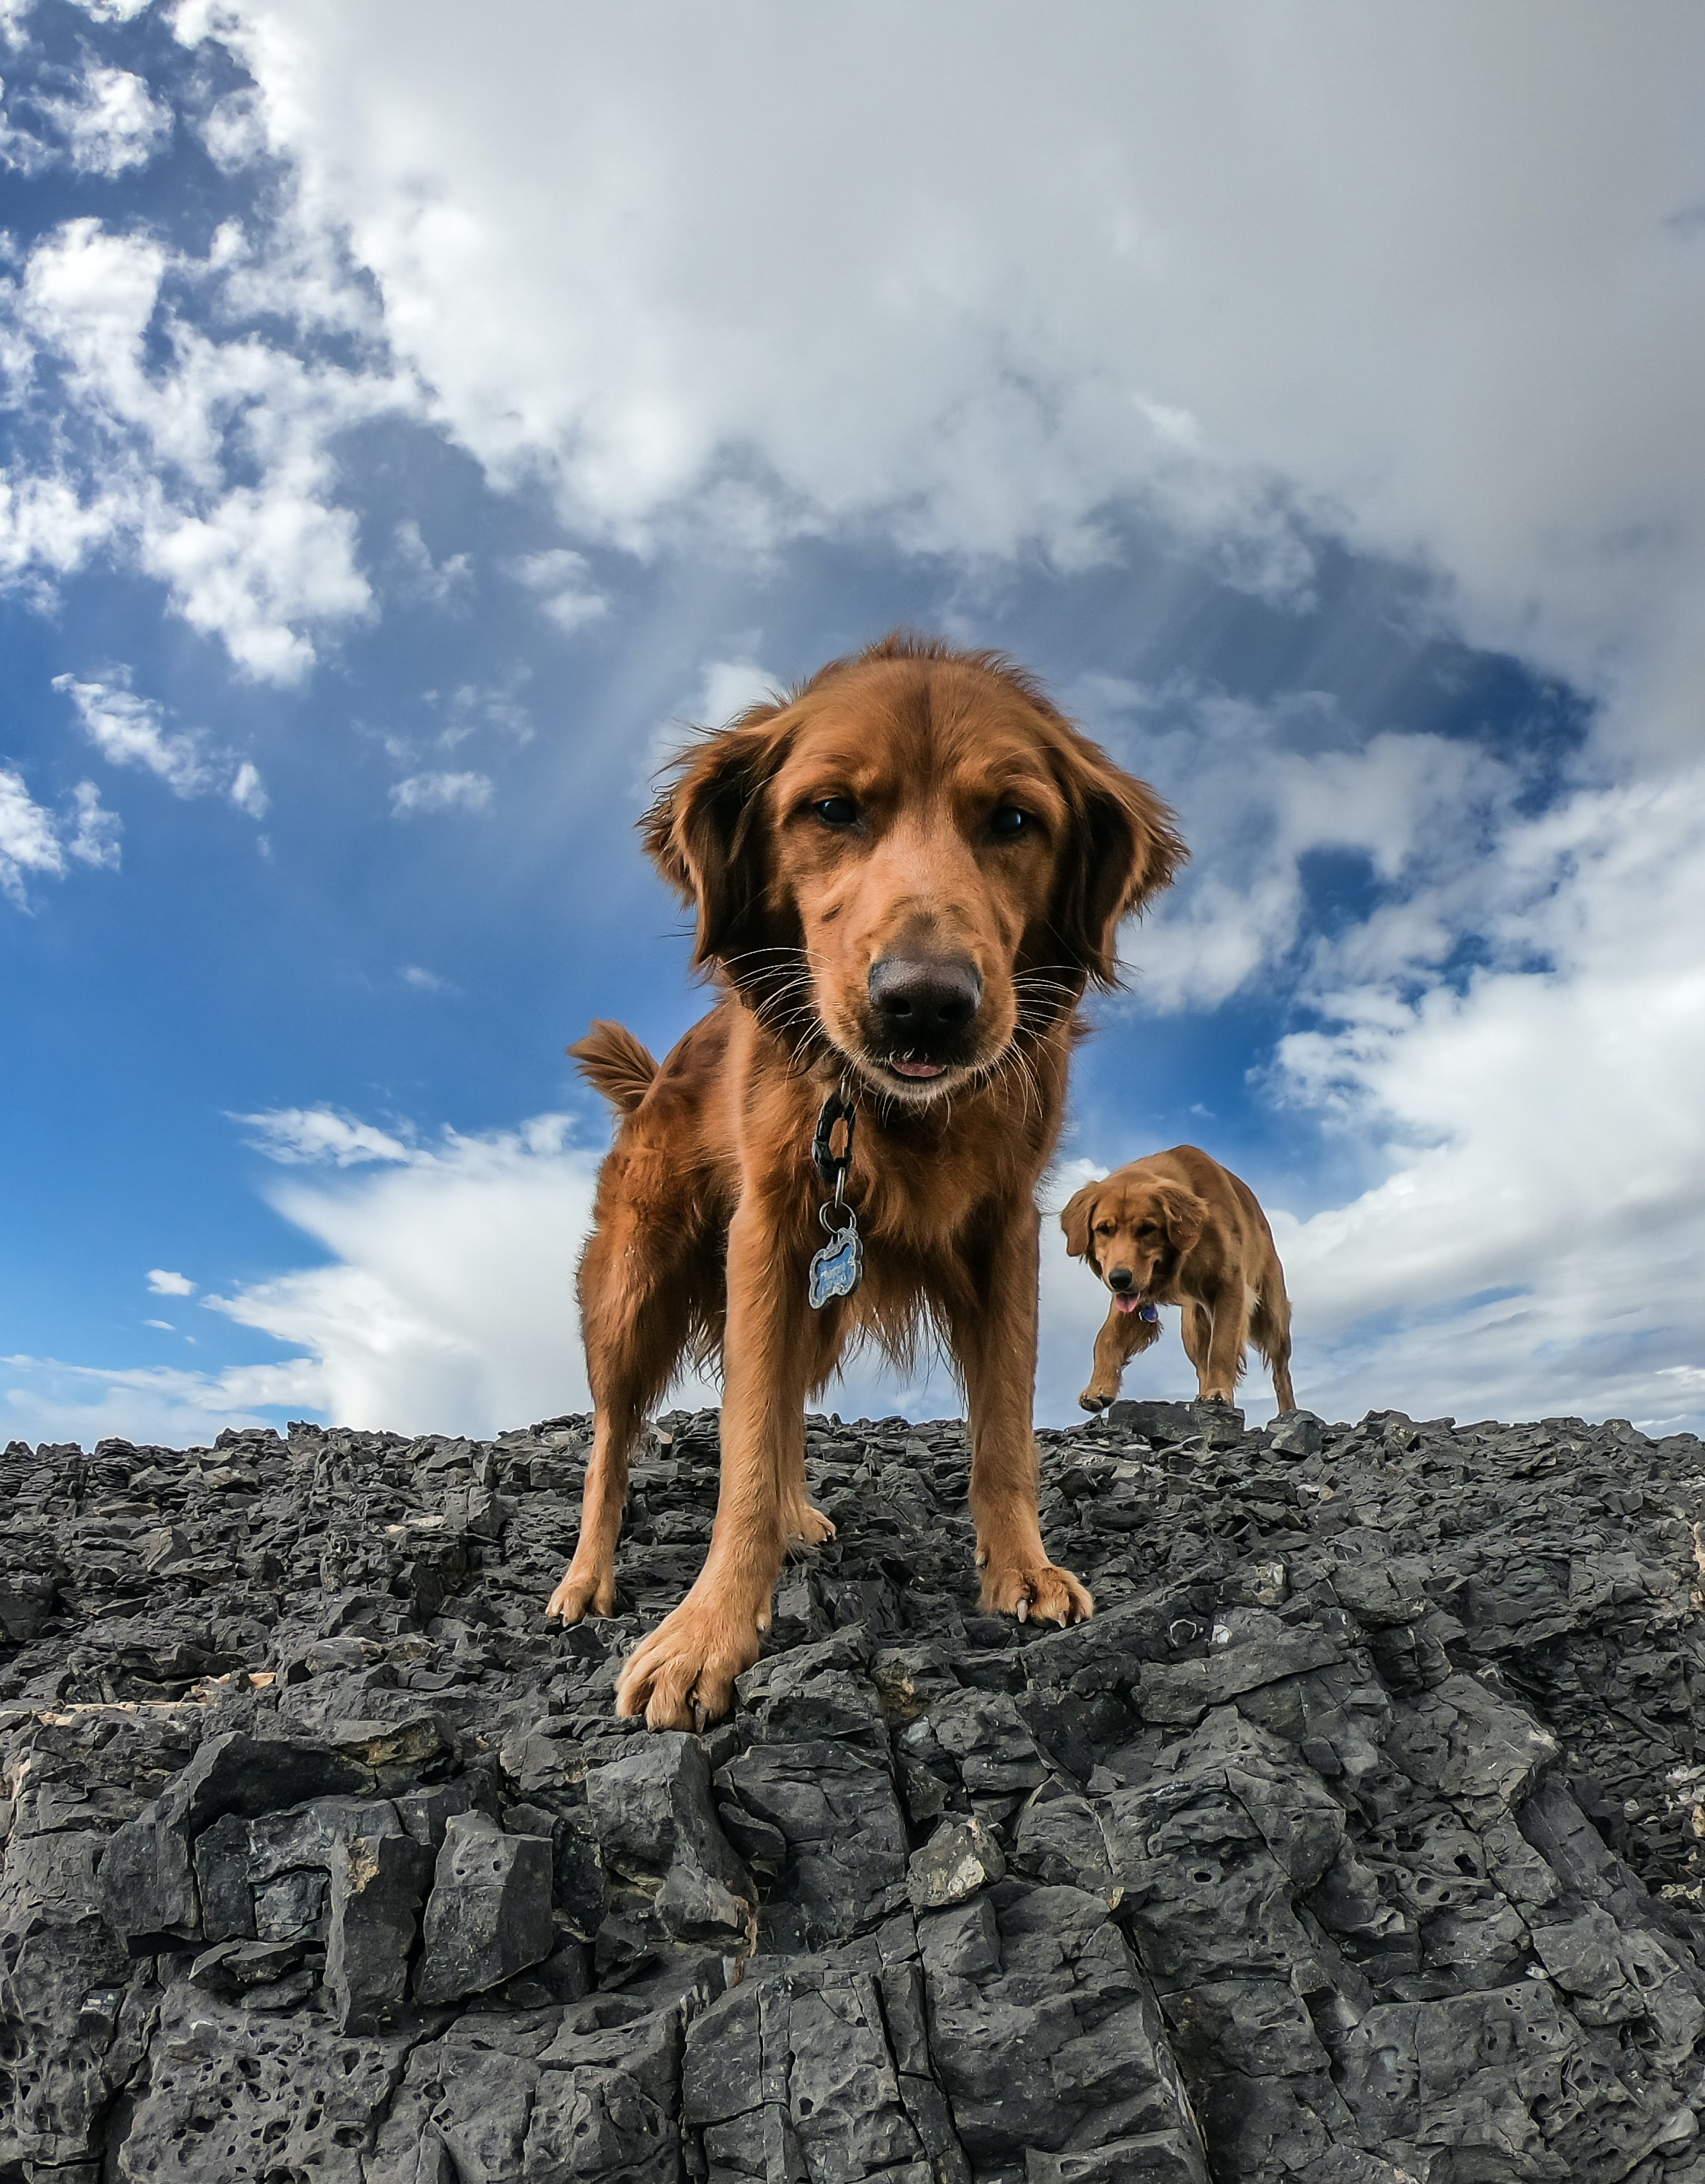 two dogs standing on cliff